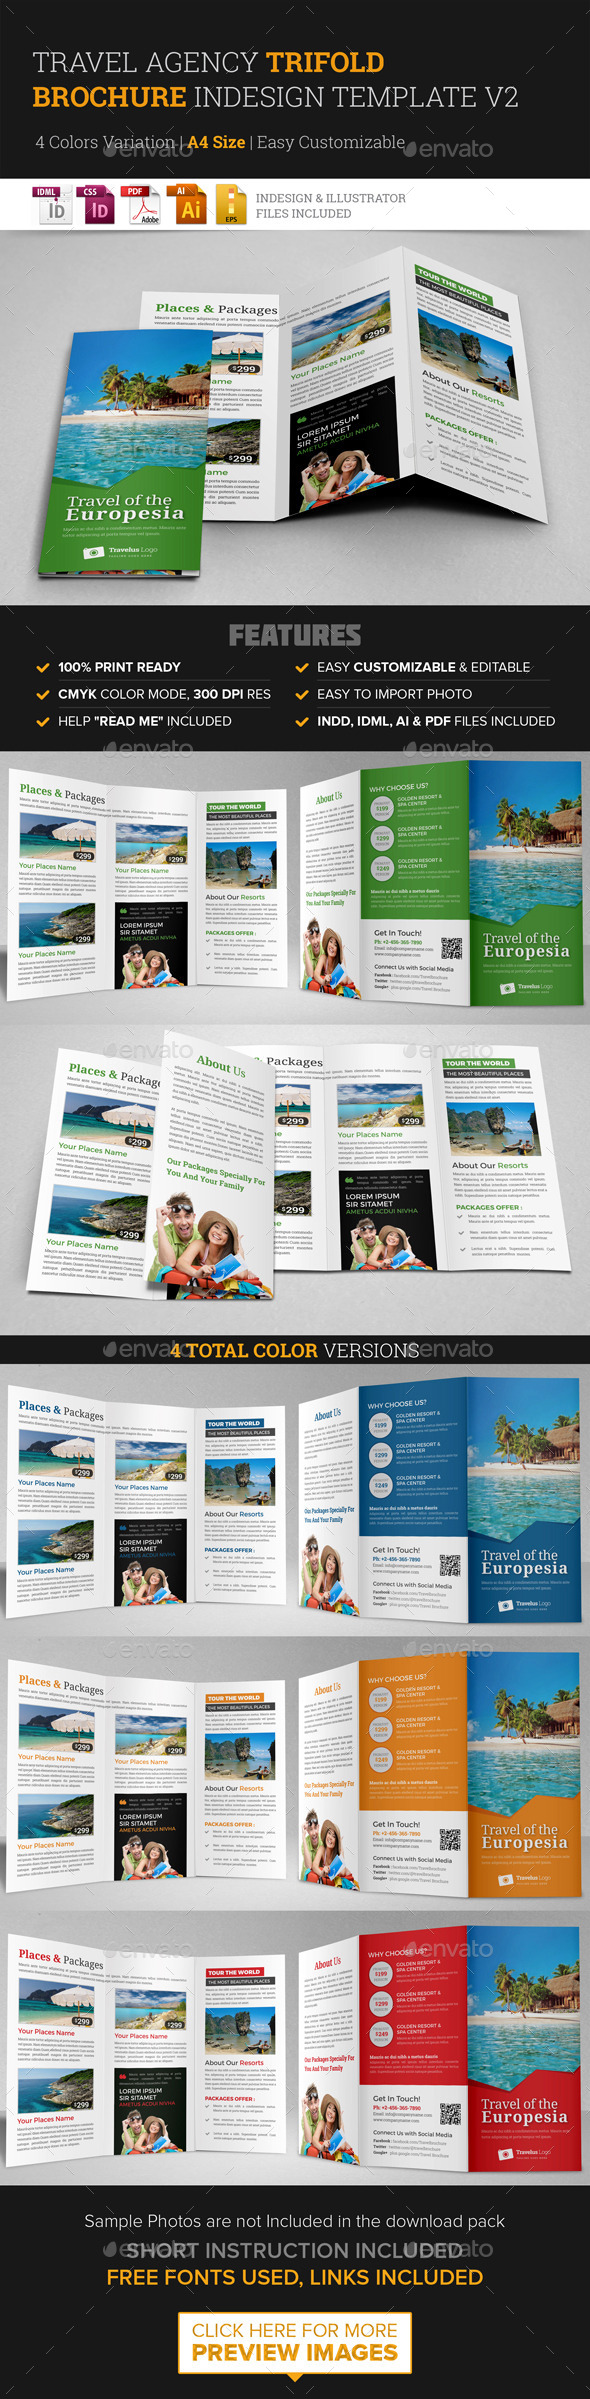 trifold brochure template indesign - travel trifold brochure indesign template v2 by